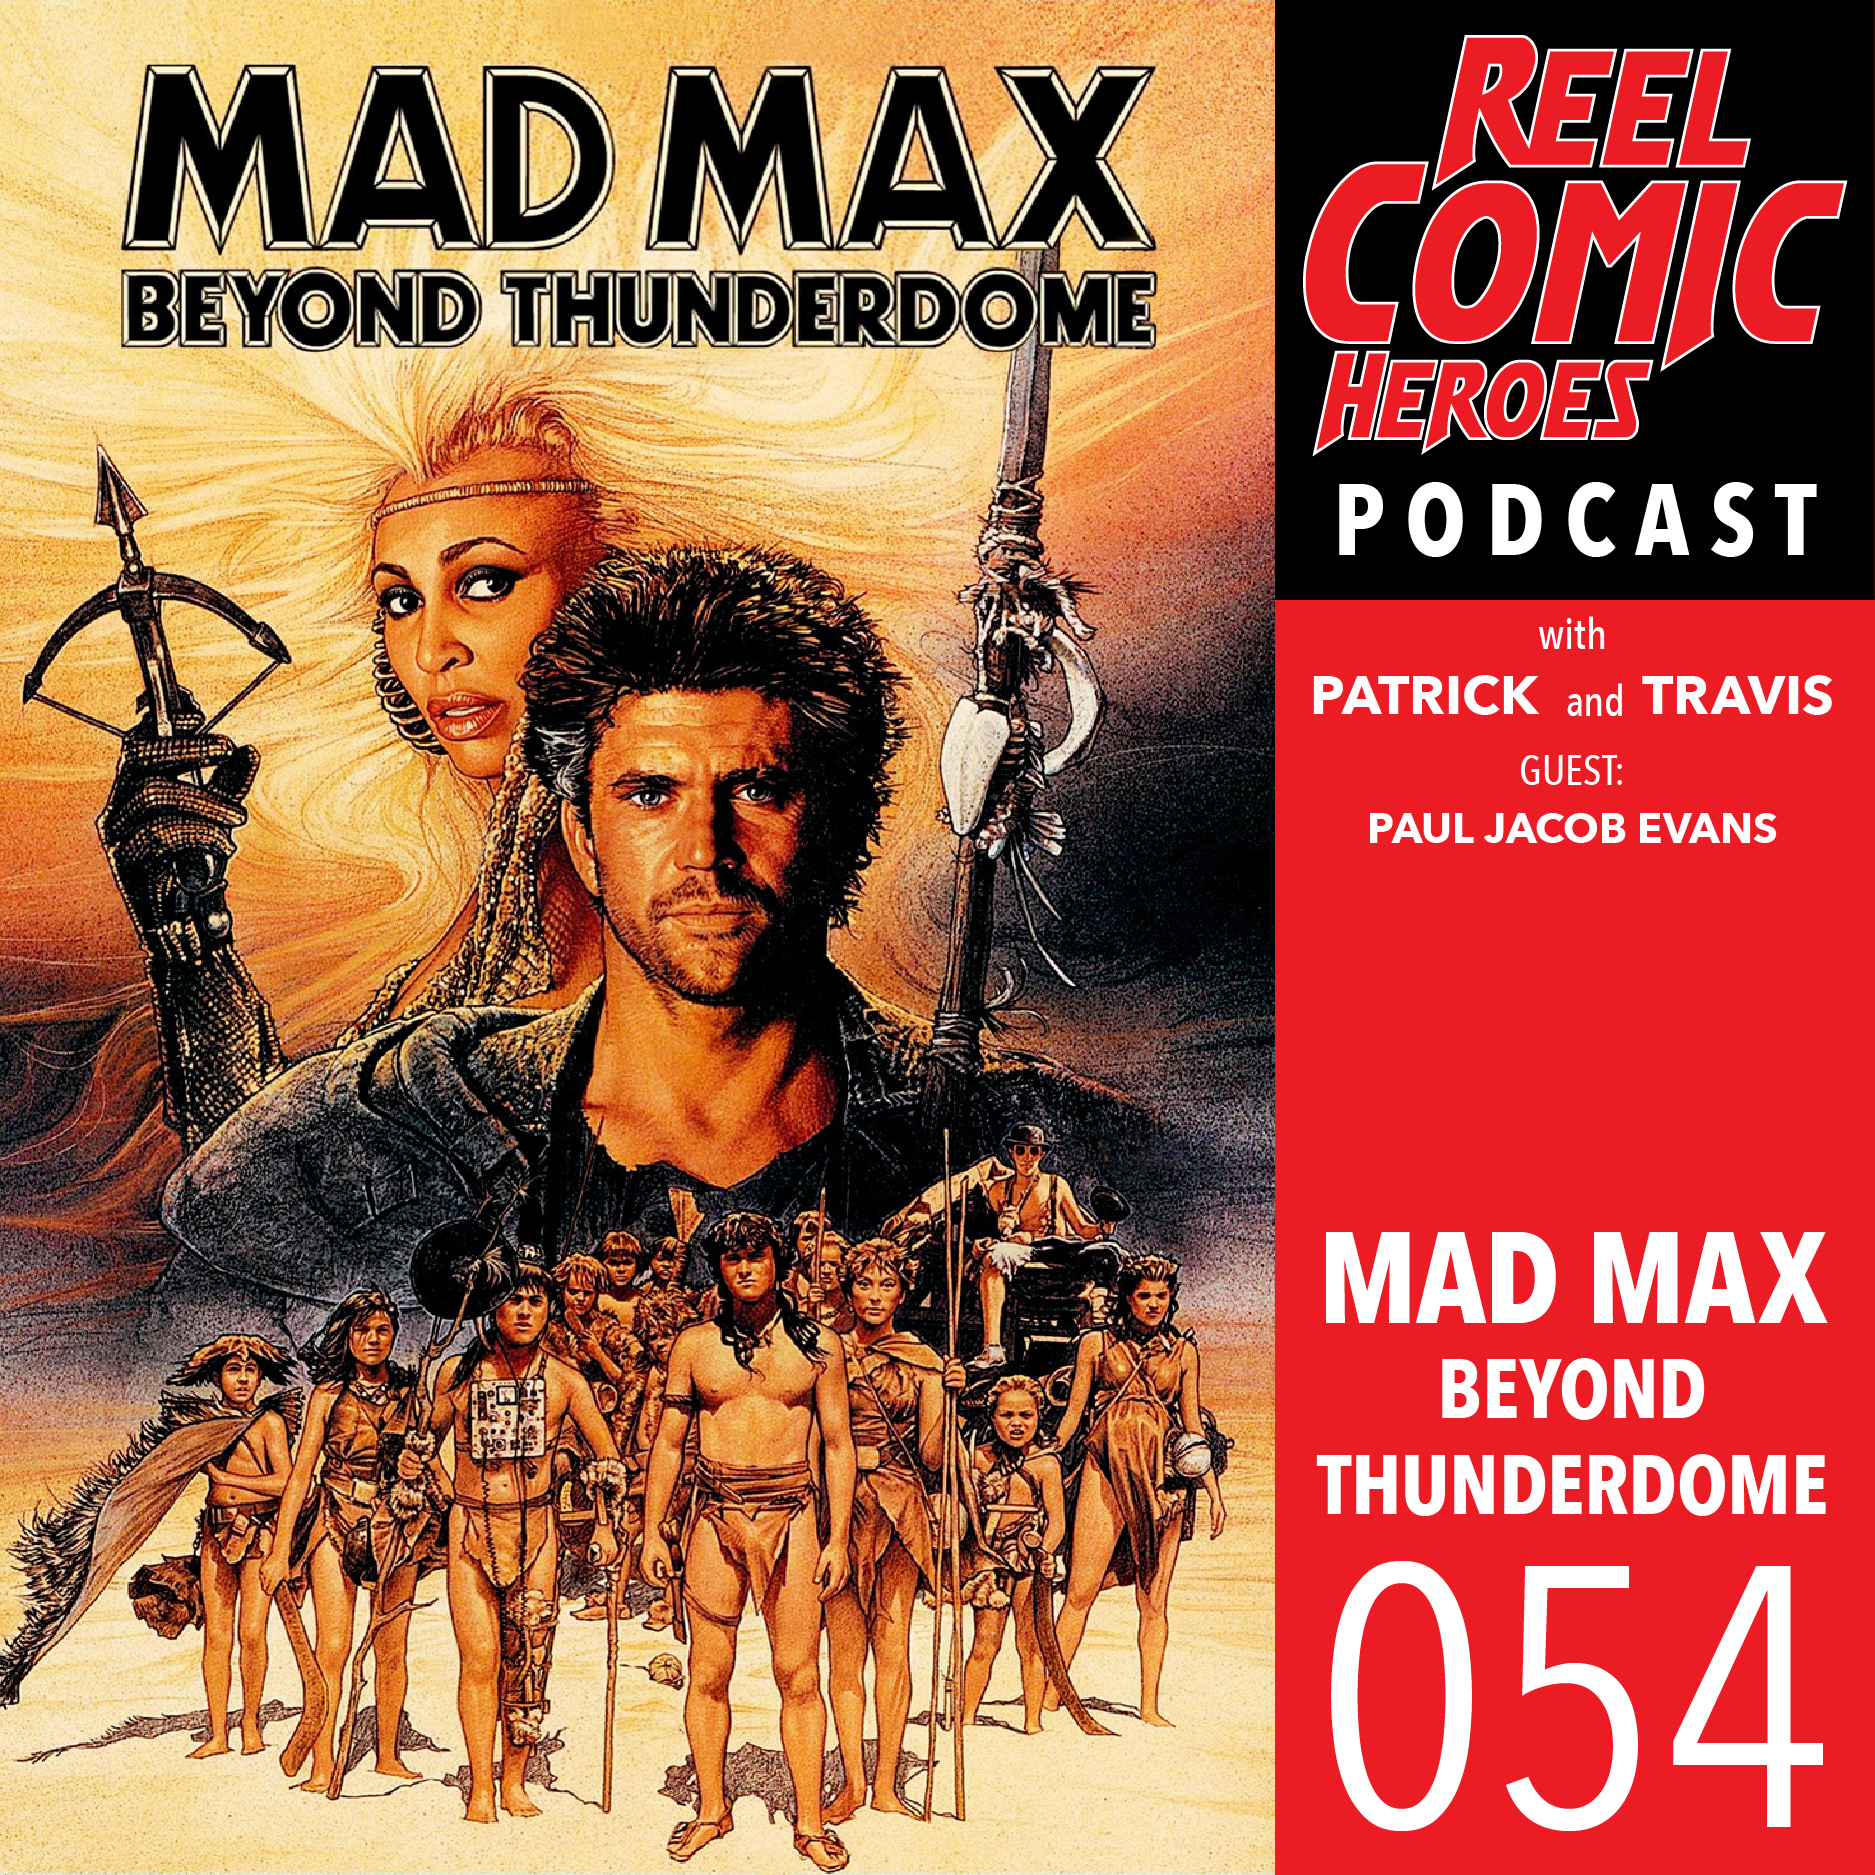 Artwork for Reel Comic Heroes 054 - Mad Max: Beyond Thunderdome with Paul Jacob Evans